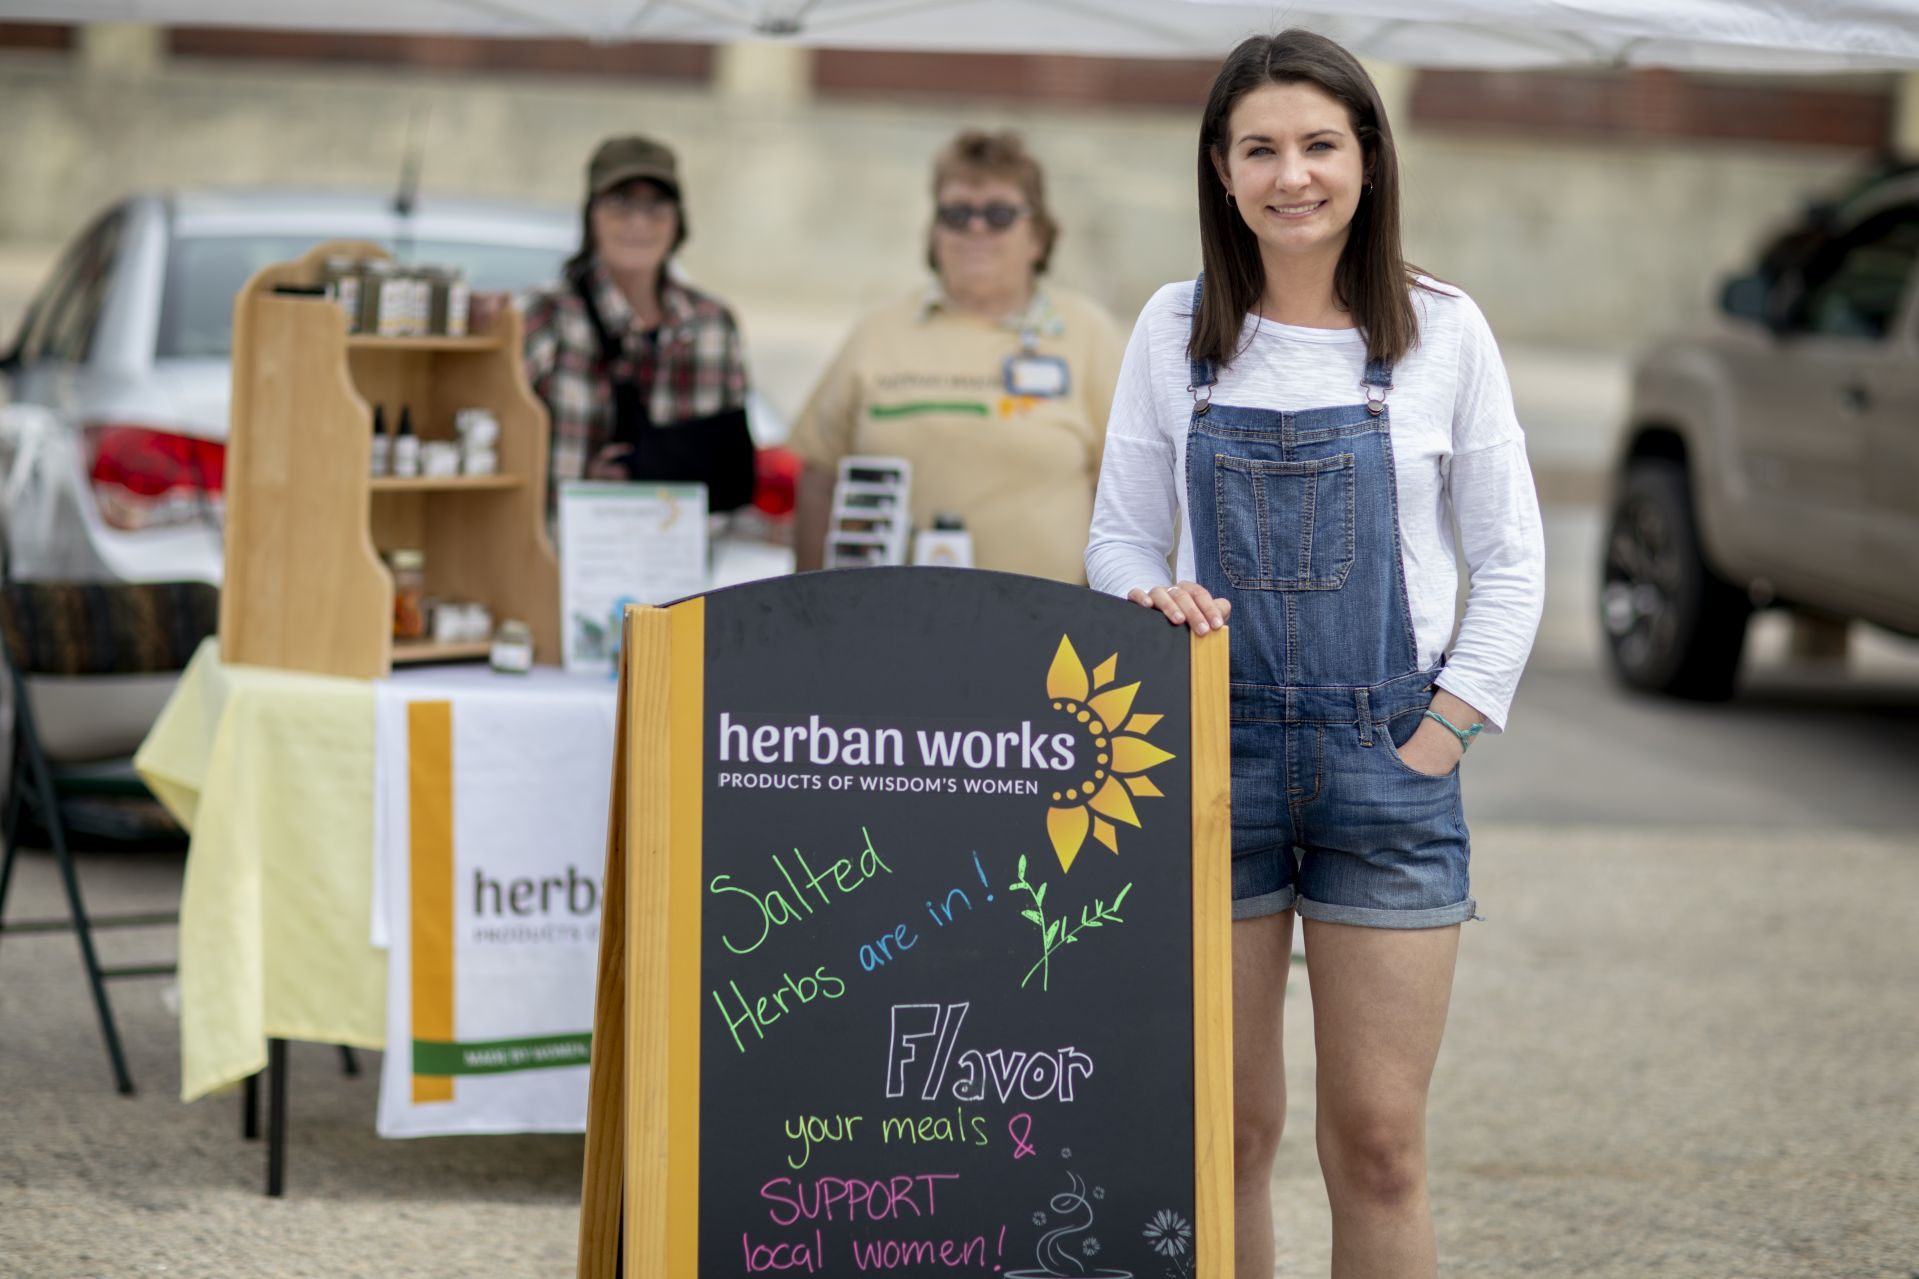 Clio Barr '19 of Hallowell, Maine, is a STA/RT (SHORT TERM ACTION/RESEARCH TEAM) partner with the Center for Wisdom's Women Herban Works. Her project title is Creating Marketing Materials and a Business Plan for Sophia's House.On the first spring day of the 2019 Lewiston Farmer's Market, Barr sells products on Sunday, May 12, with Judy Maloney garden and production coordinator and volunteer Mary Hopkins, who also helps with harvesting and planting.